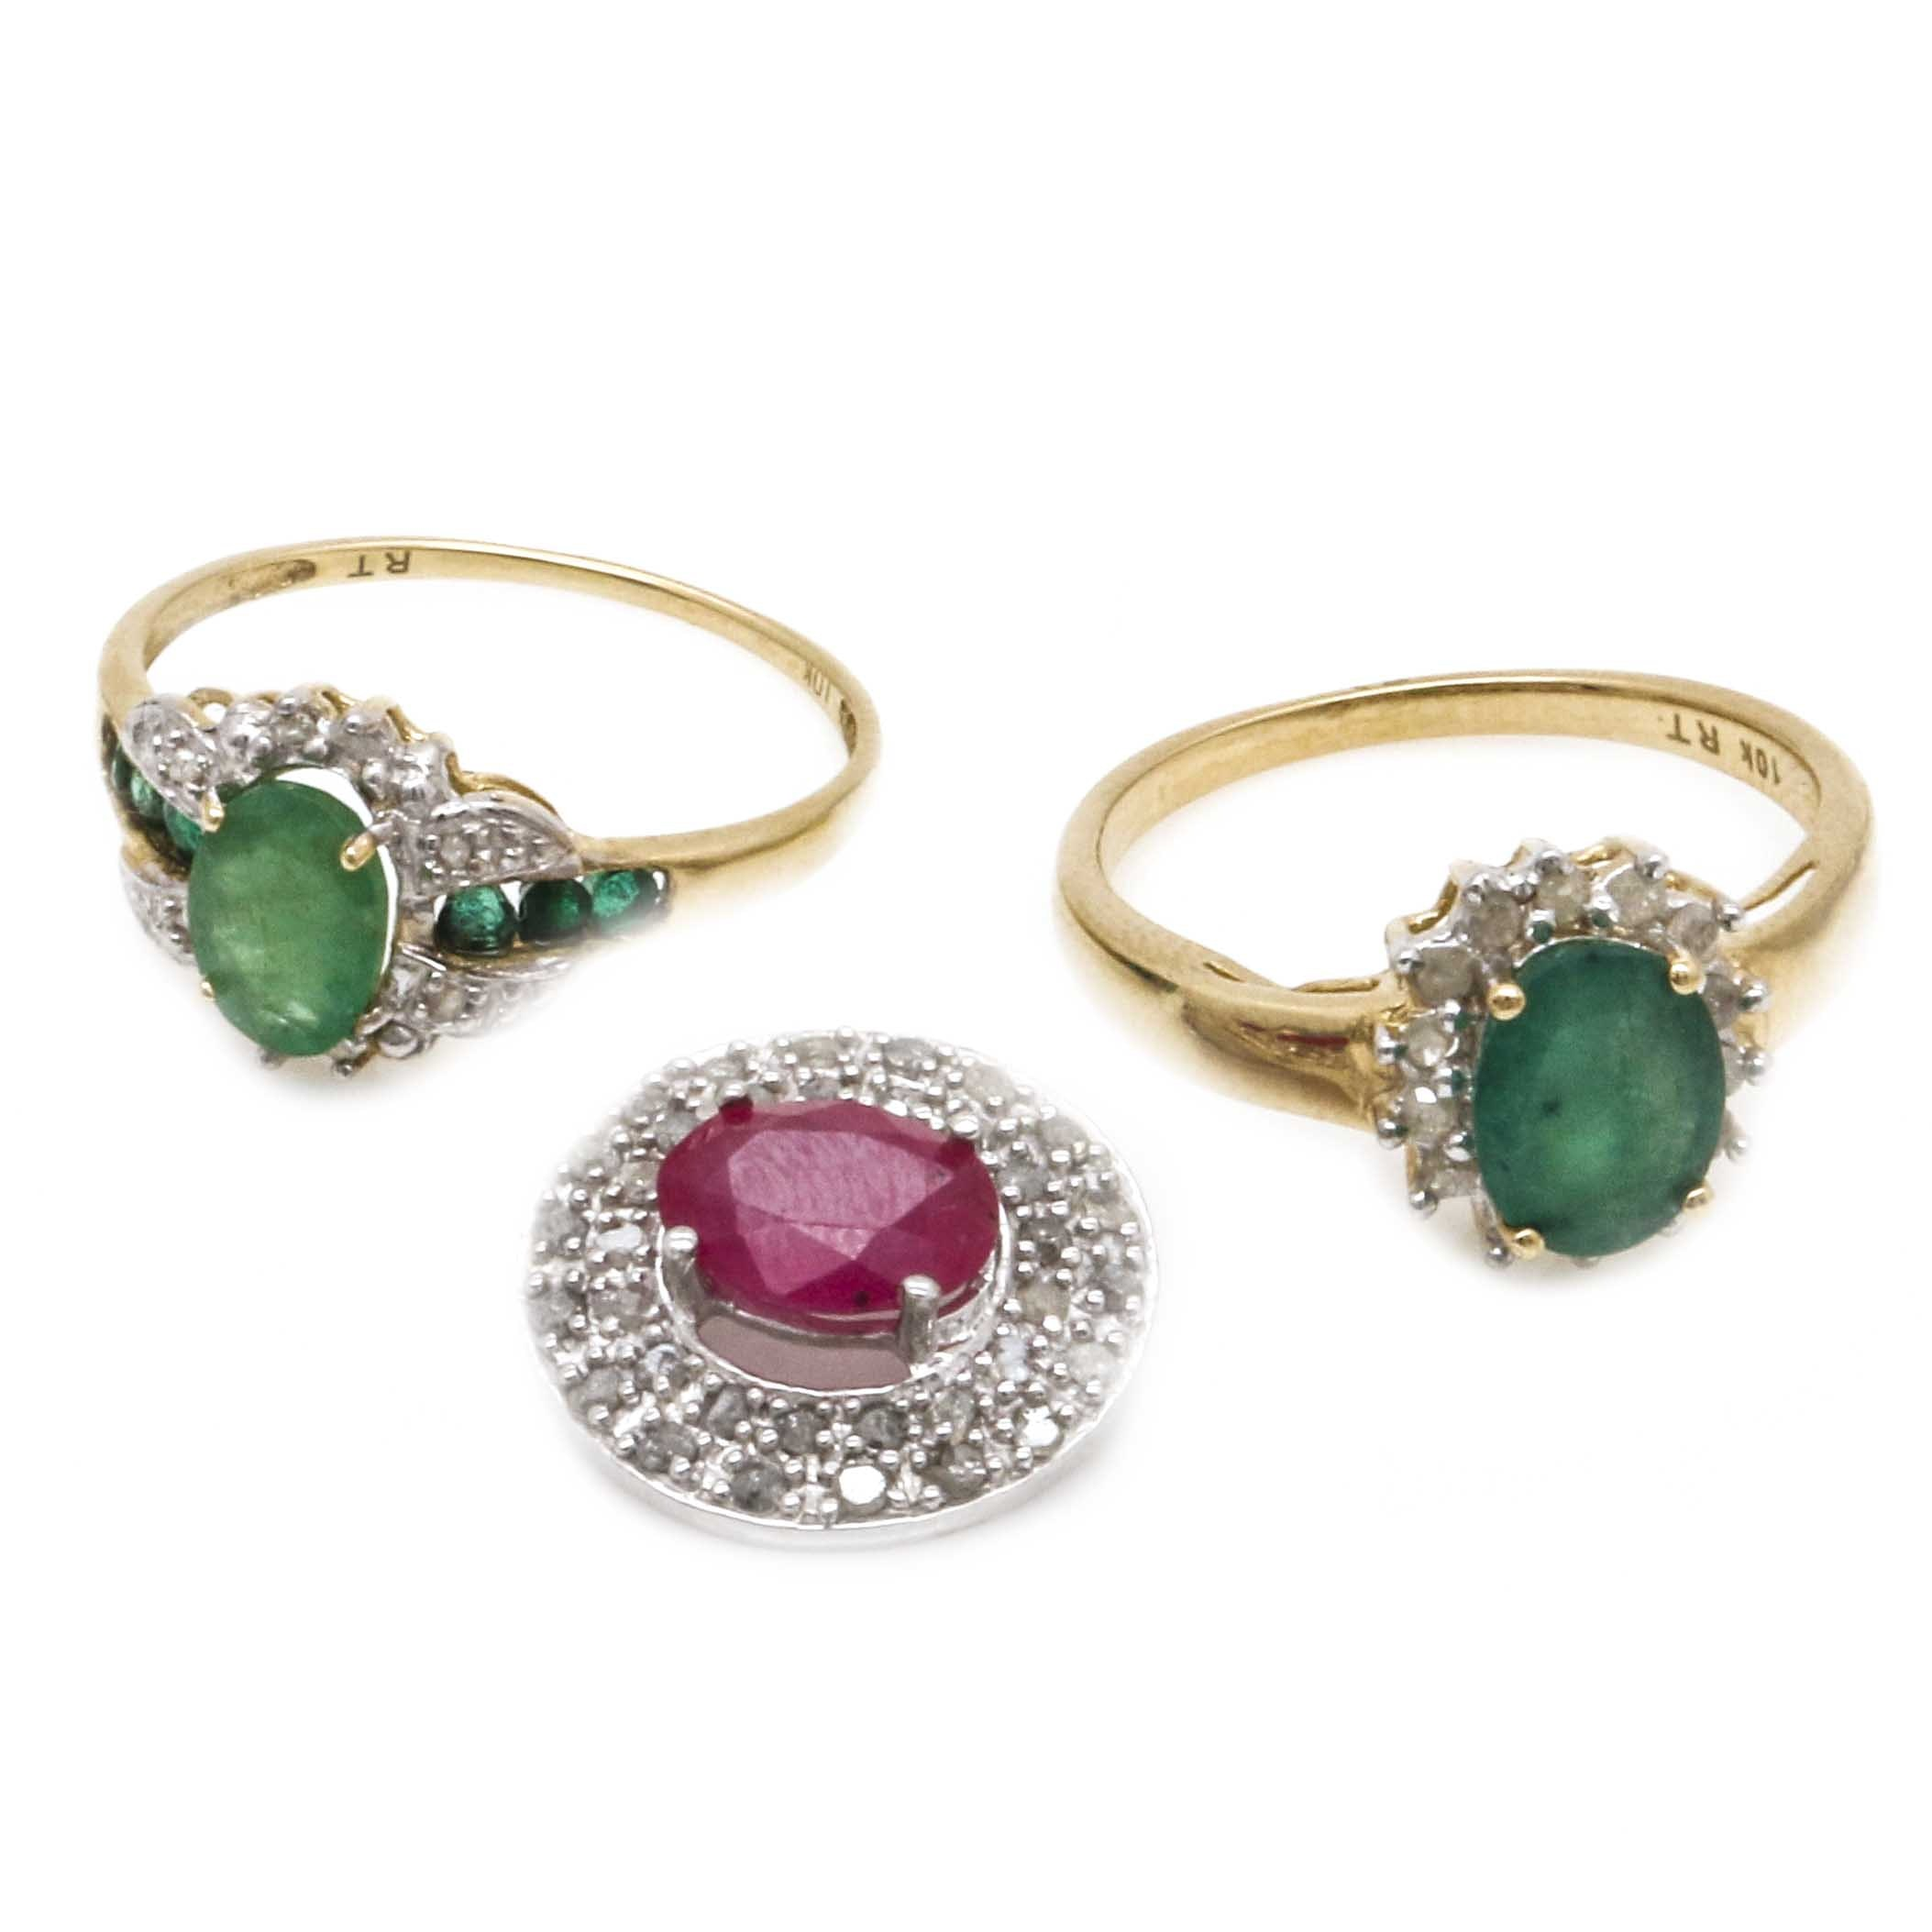 10K Gold Gemstone Pendant and Rings